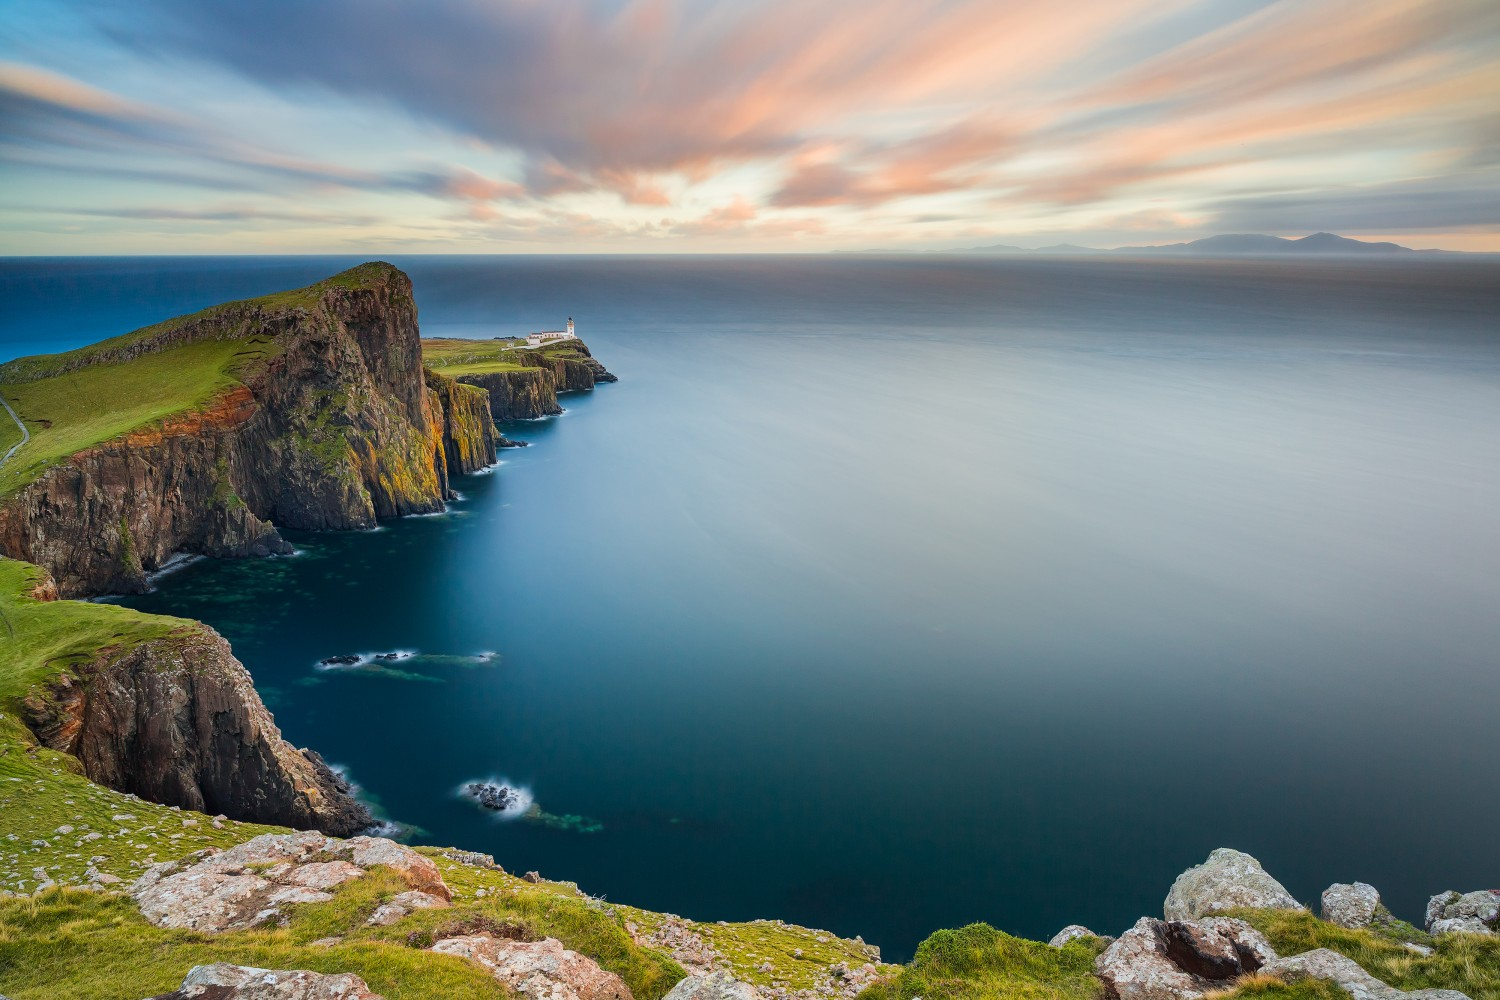 Shoot Stunning Seascapes With These Long Exposure Tips